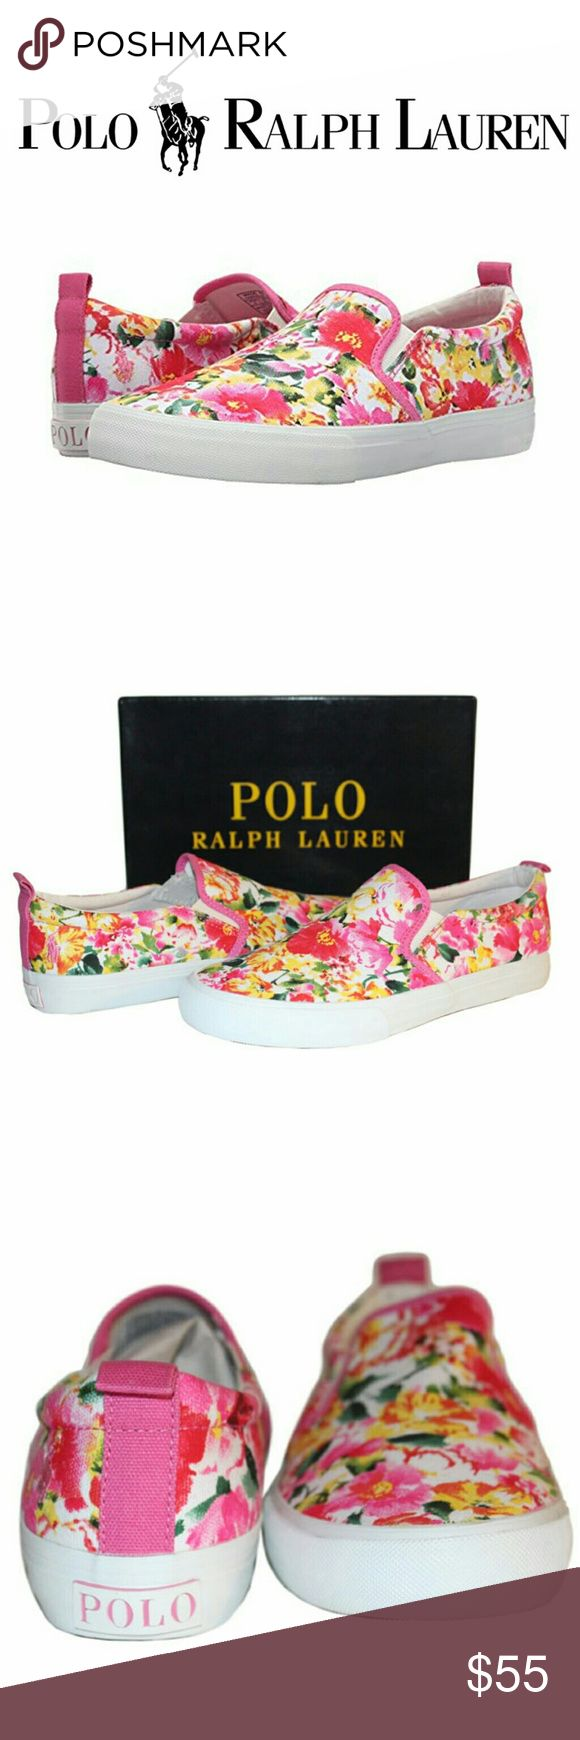 Polo Ralph Lauren Pink Flower Fashion Sneakers 👟 Polo Ralph Lauren Kids Carlee Twin Gore Floral Fashion Sneaker/Loafer/Slip-on.  ✔Color: pink, white.   ✔Material: cotton/ rubber outsole   ✔Size: Youth US 6M, Women's US 7.5-8M (Yes, I personally own the same shoes and I absolutely love them).   ✔Condition: Brand New w/ box, manufacturer packaged and sealed. Polo by Ralph Lauren Shoes